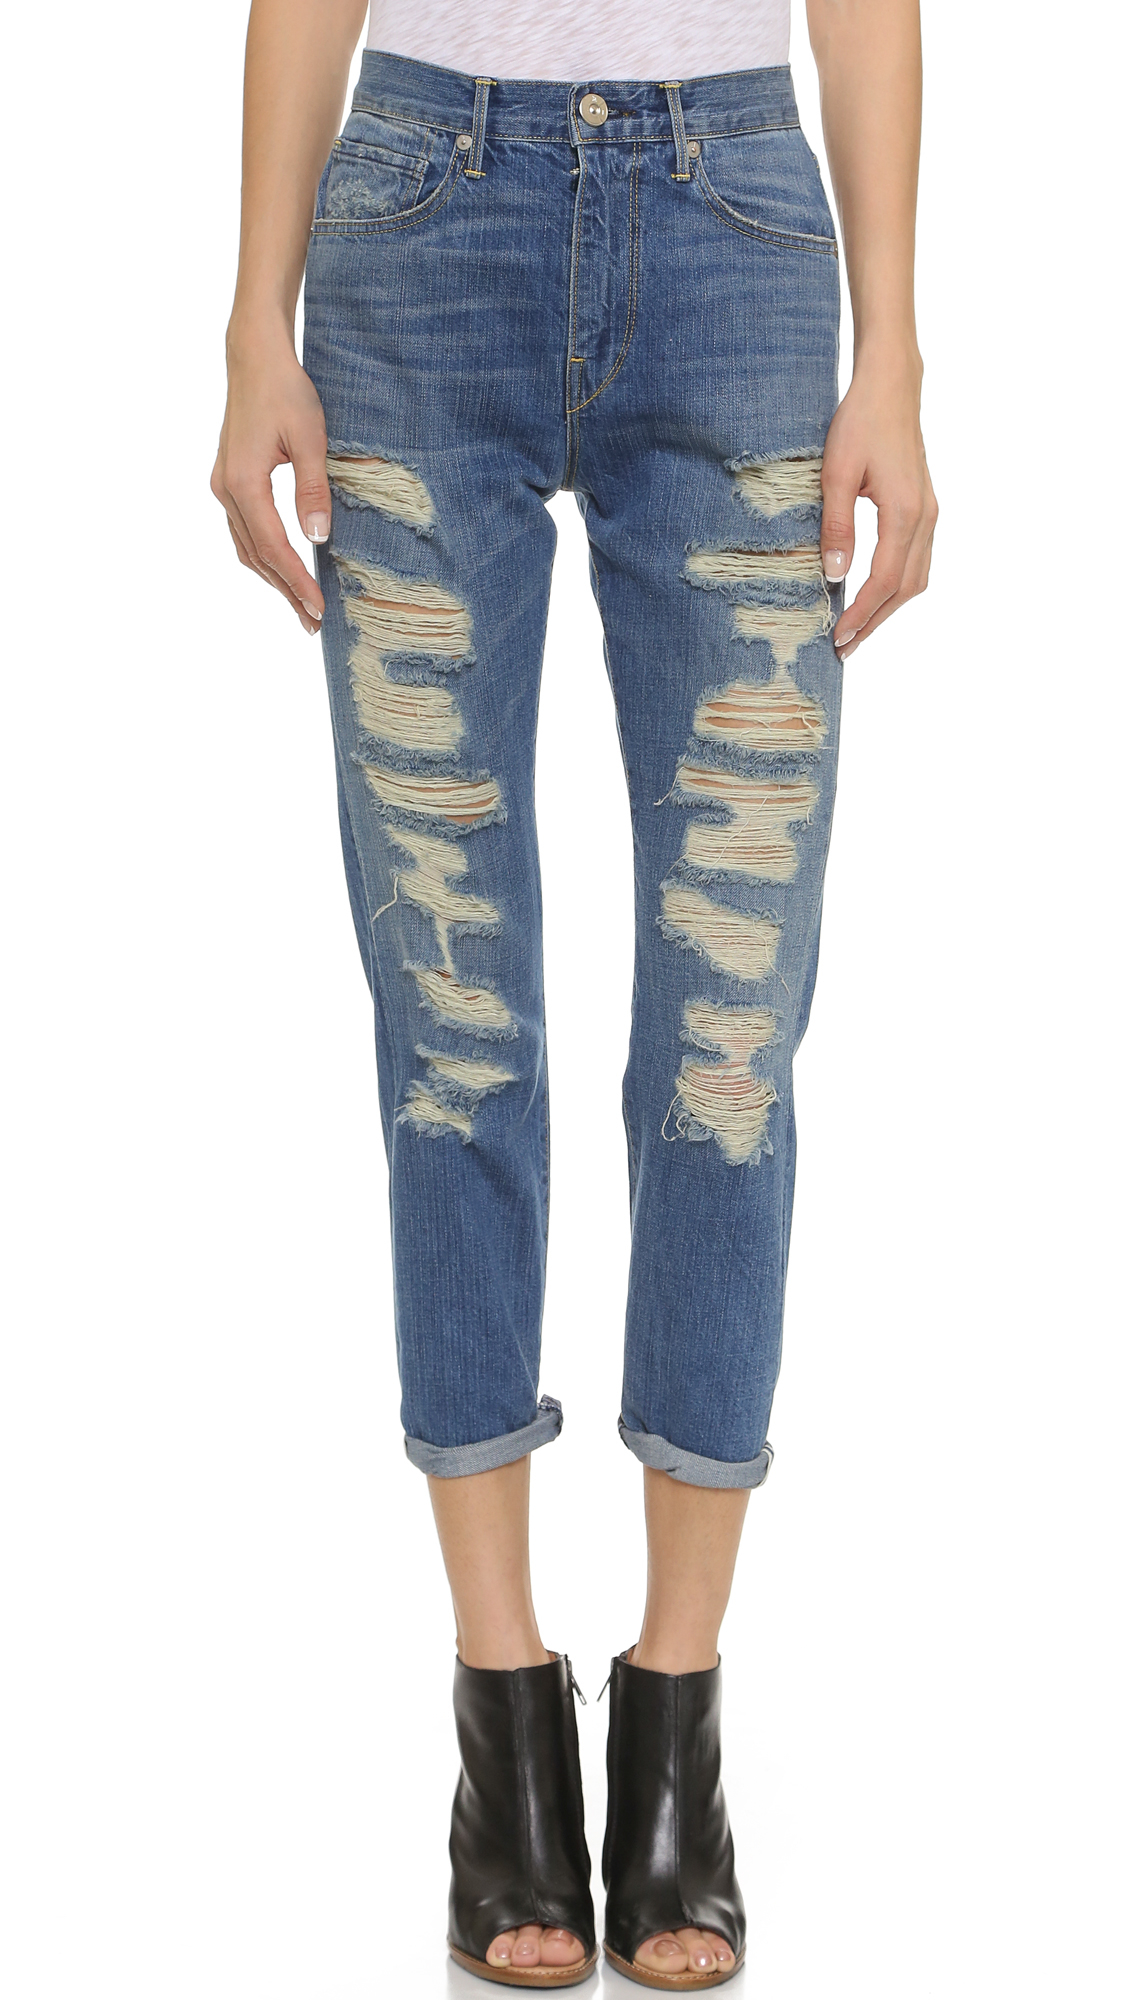 3x1 W4 High Rise Cropped Boyfriend Jeans - Hicks in Blue | Lyst